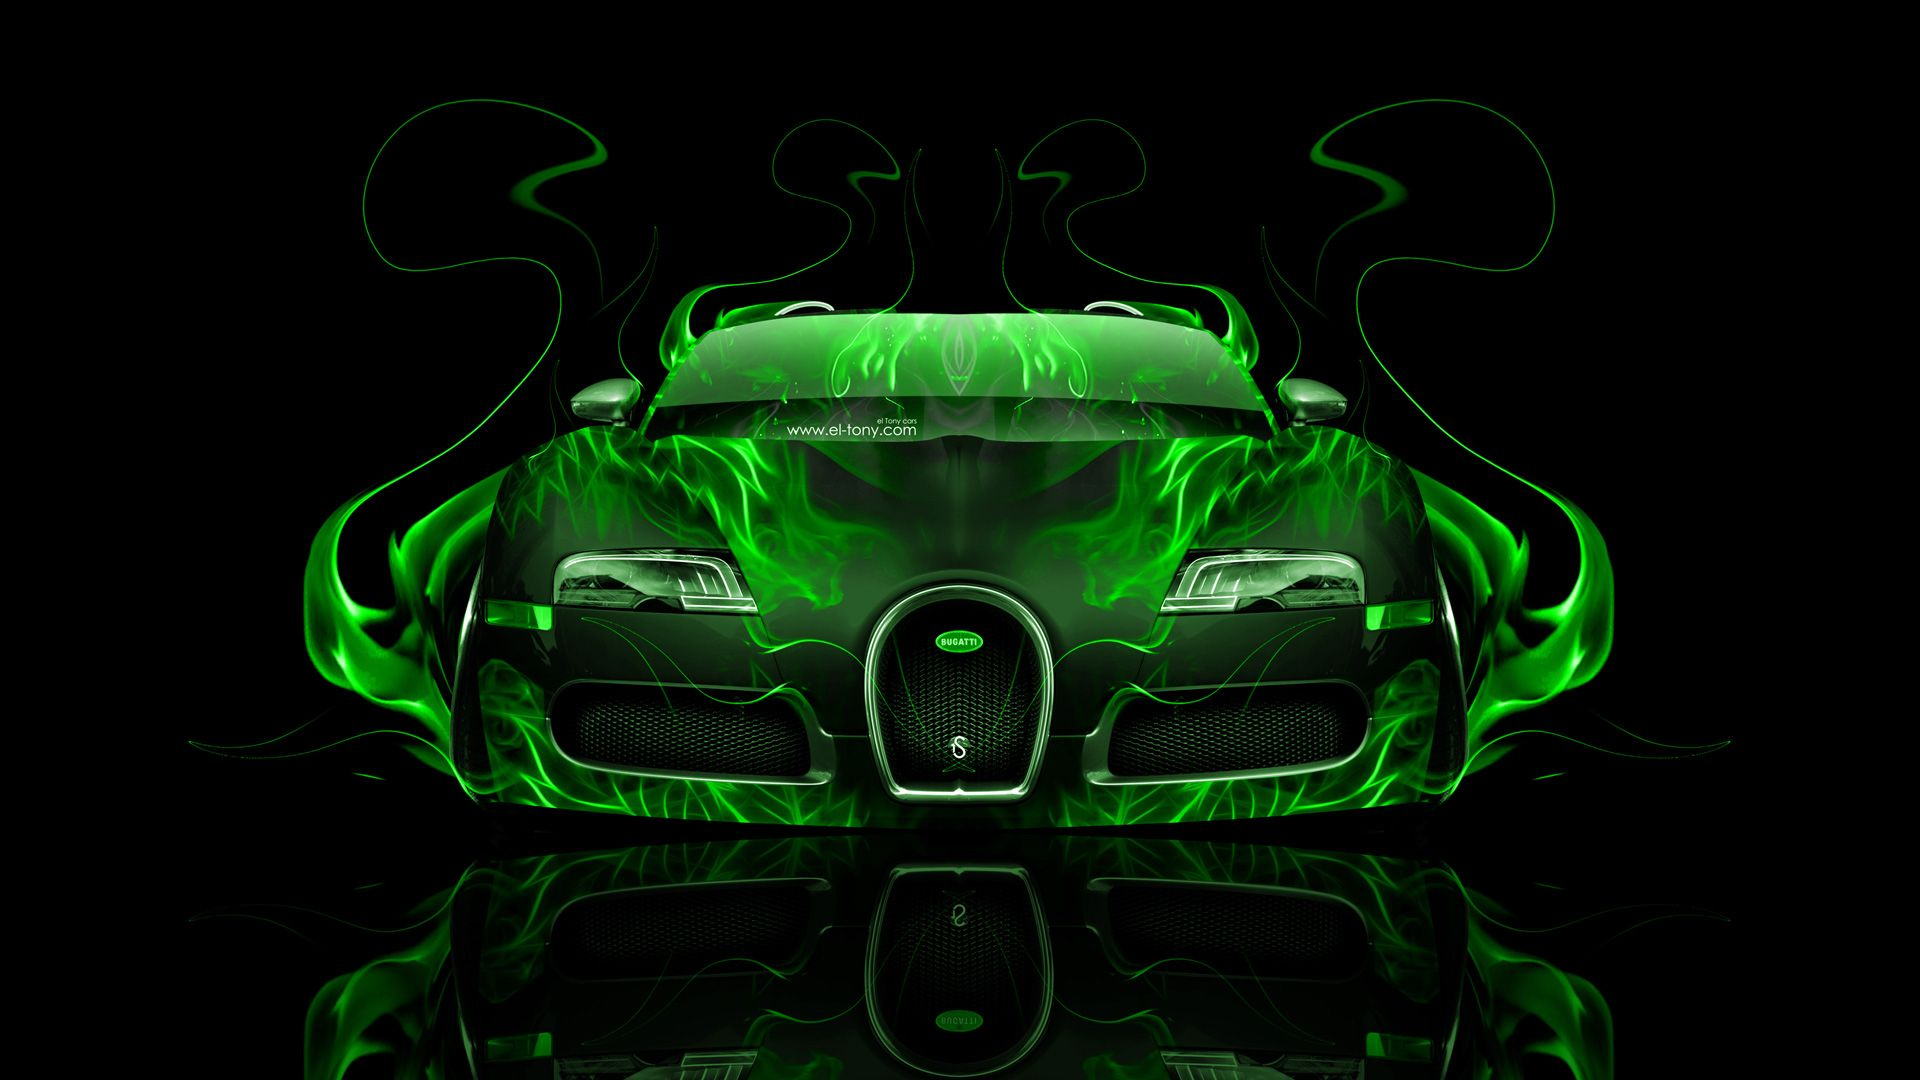 neon bugatti for pinterest - photo #2